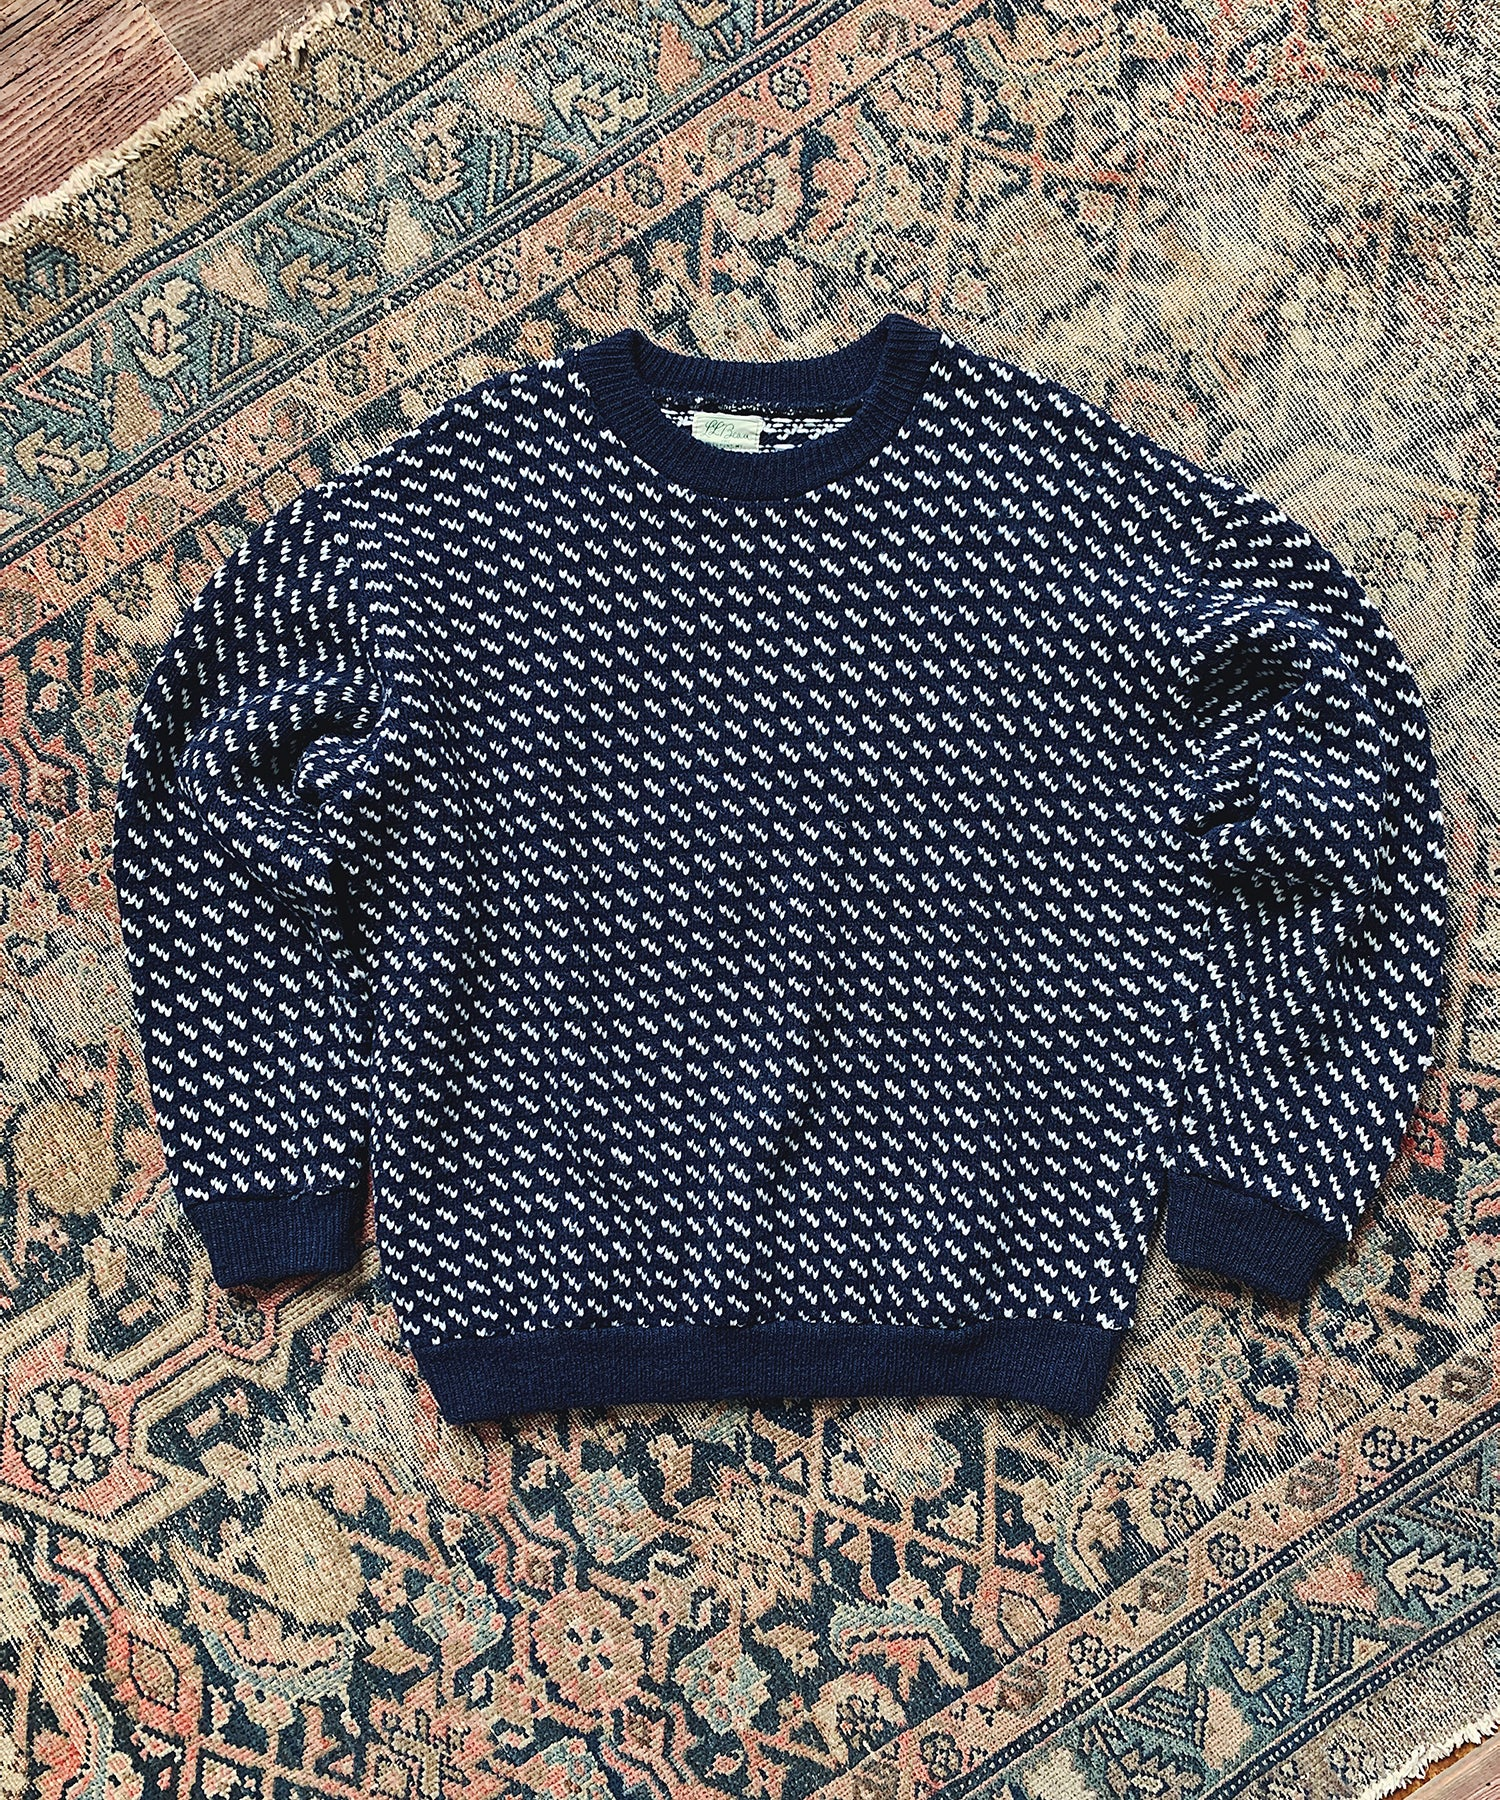 Item #10 -  Todd Snyder x Wooden Sleepers 1960's Norwegian Sweater in Navy - SOLD OUT